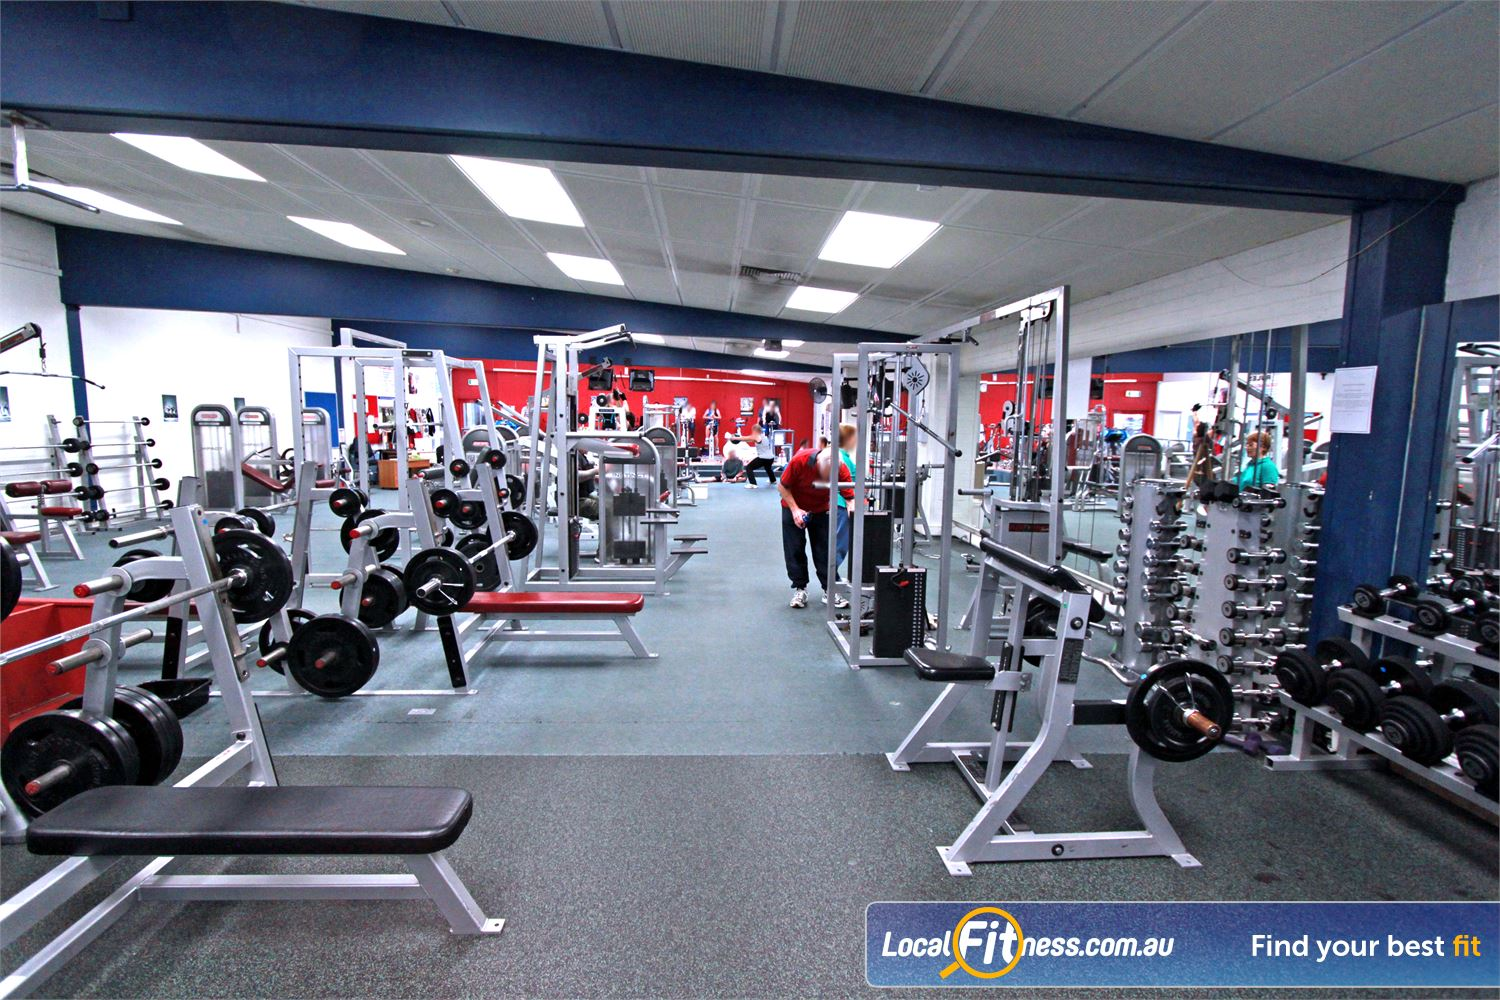 East Keilor Leisure Centre Near Niddrie A full range of easy to use plate loading machines and benches.